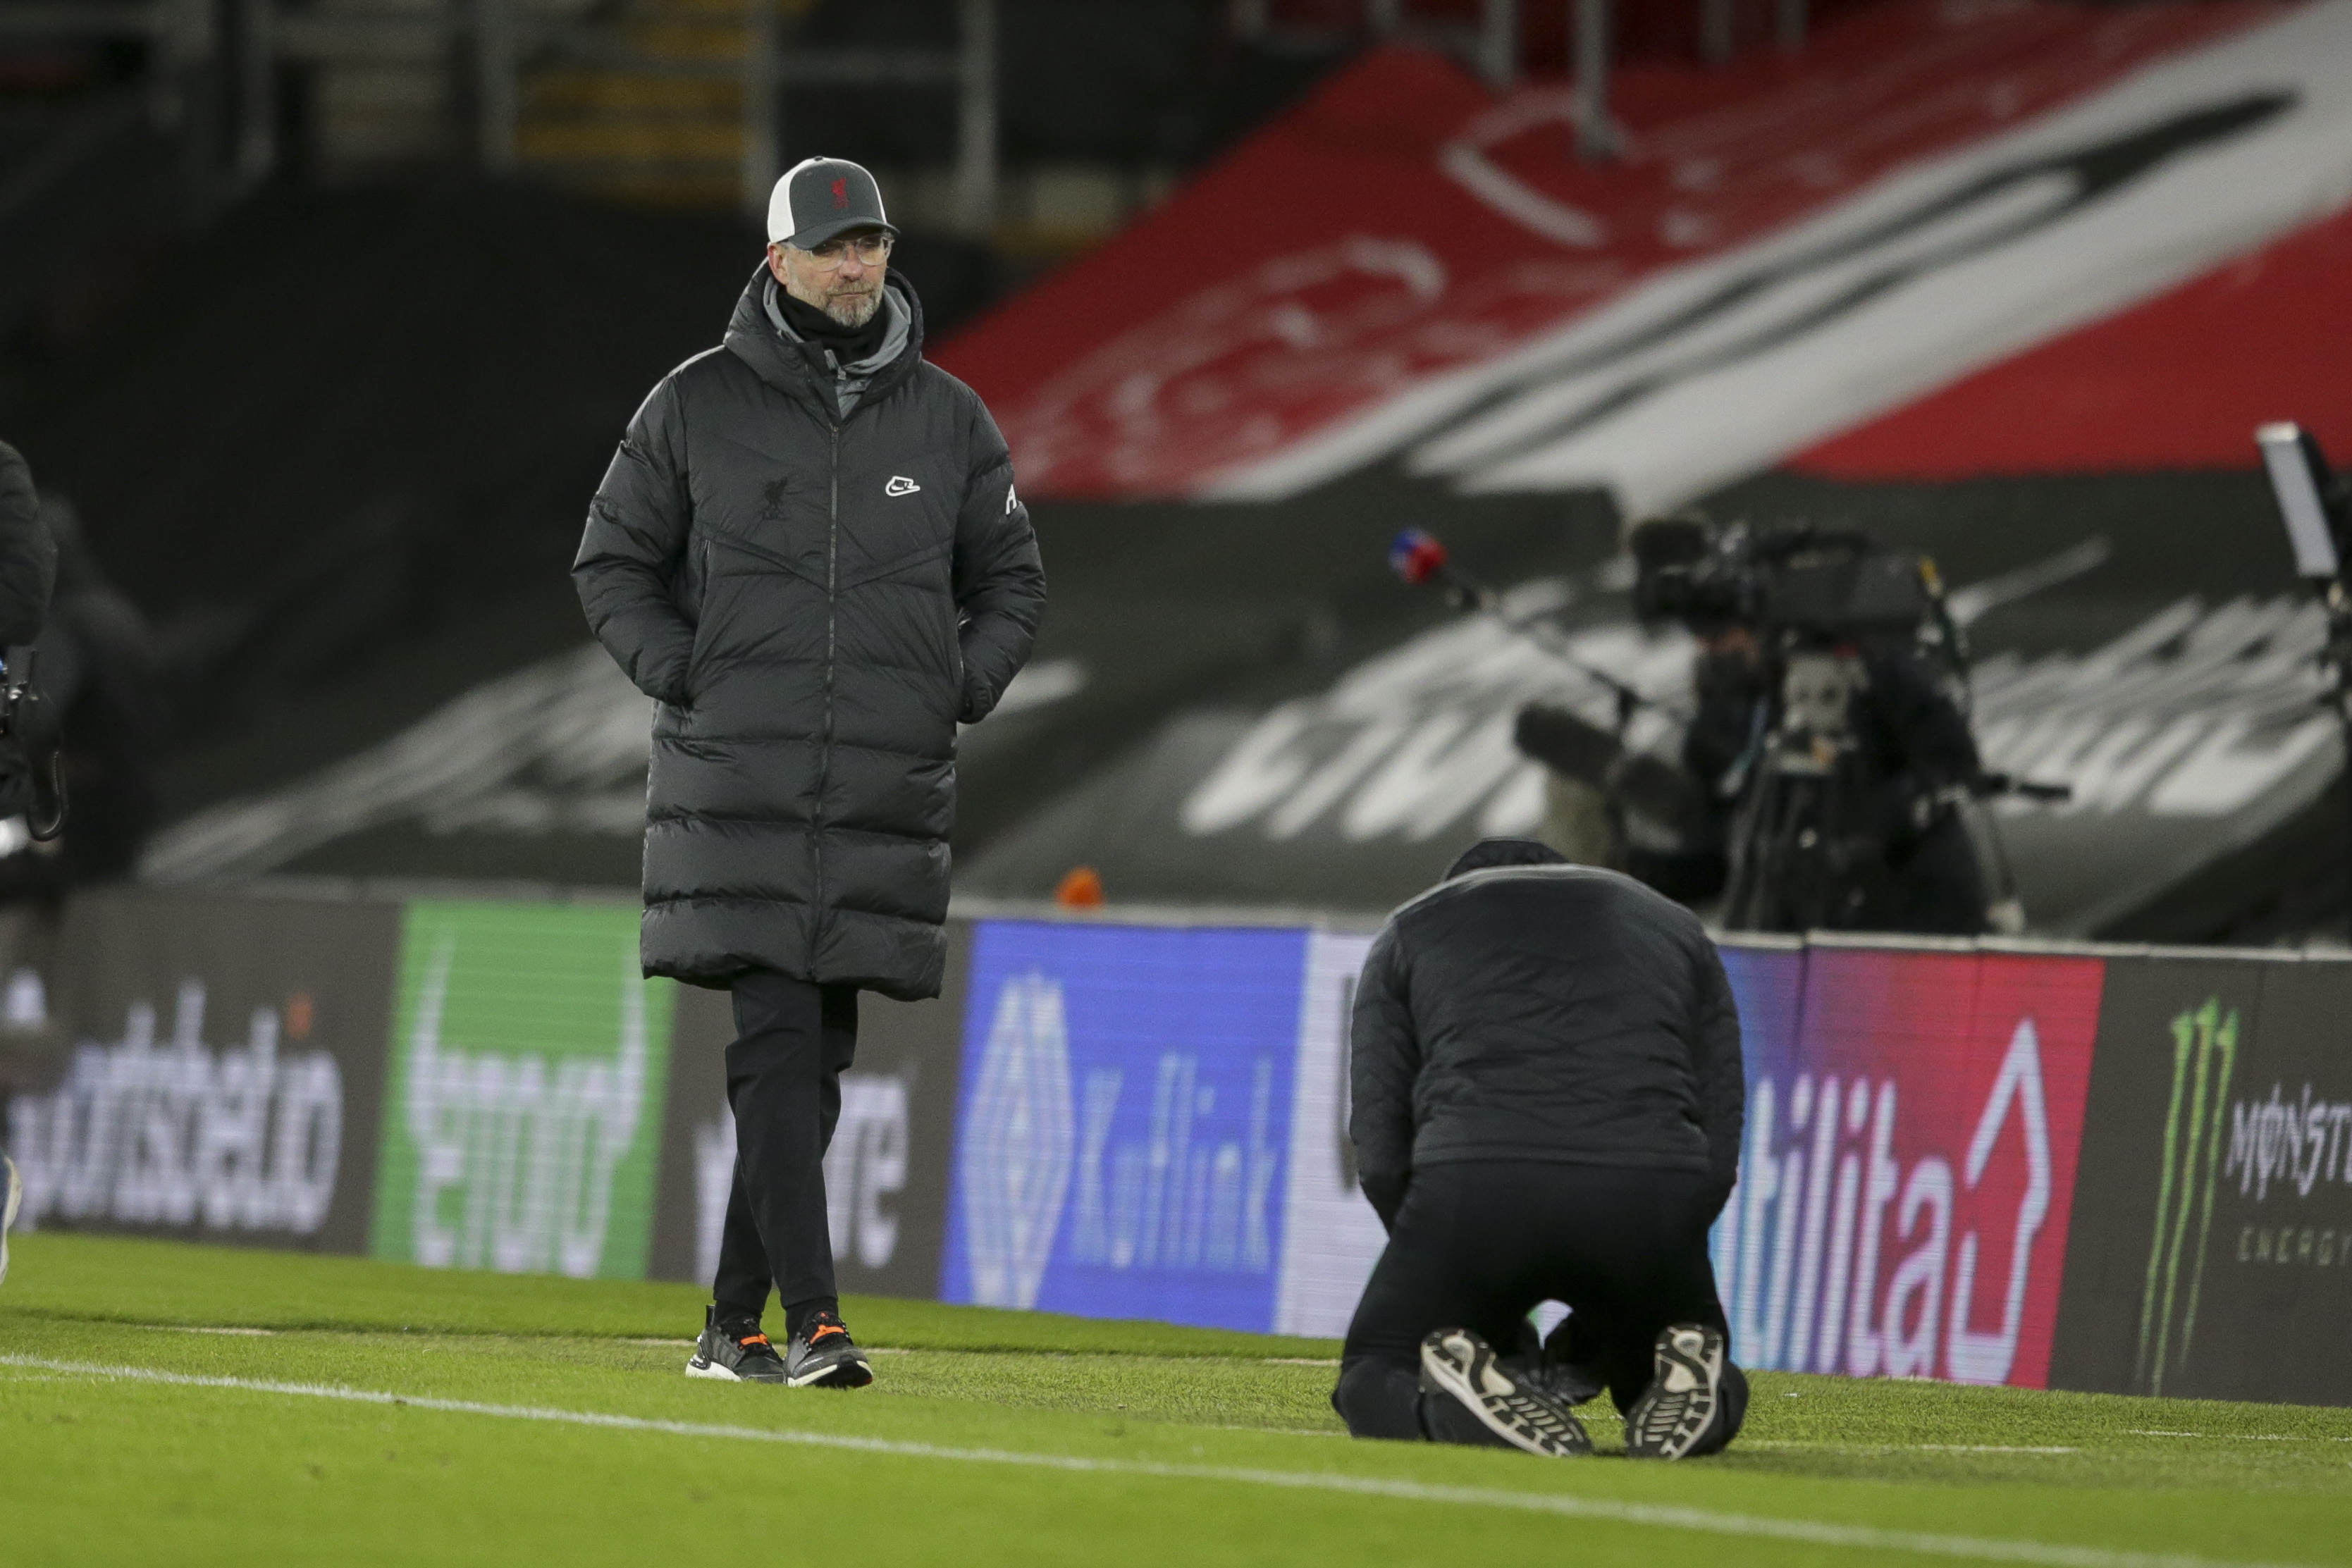 Southampton v Liverpool - Premier League, preview, team news, injury update, how to watch on TV, where to stream online, kick-off times